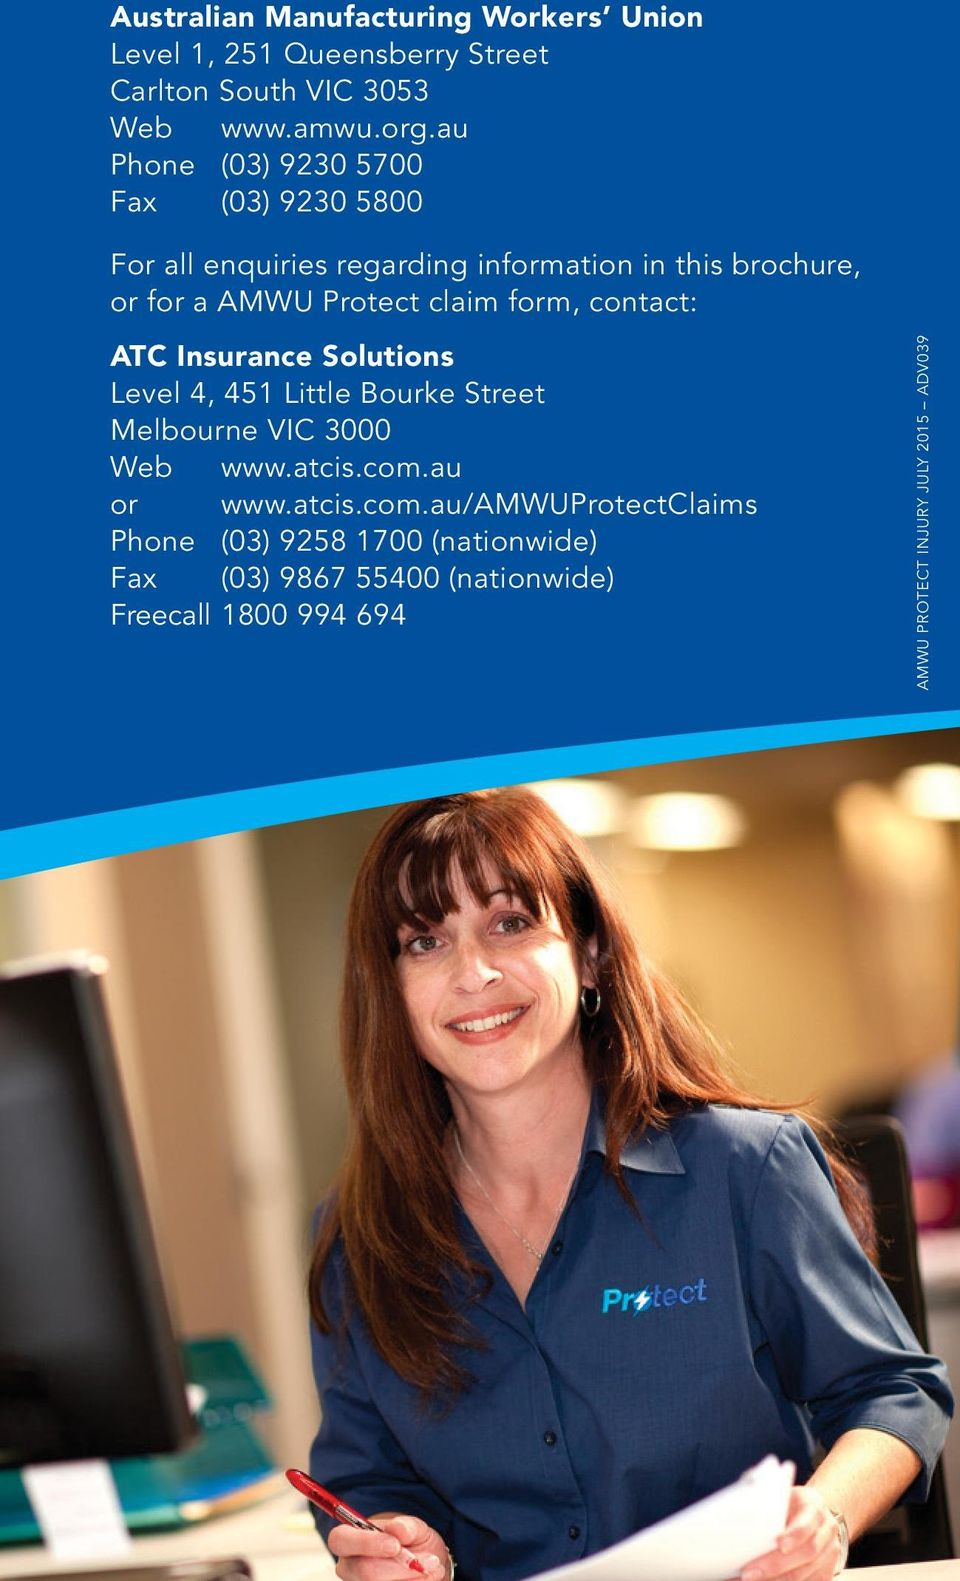 form, contact: ATC Insurance Solutions Level 4, 451 Little Bourke Street Melbourne VIC 3000 Web www.atcis.com.